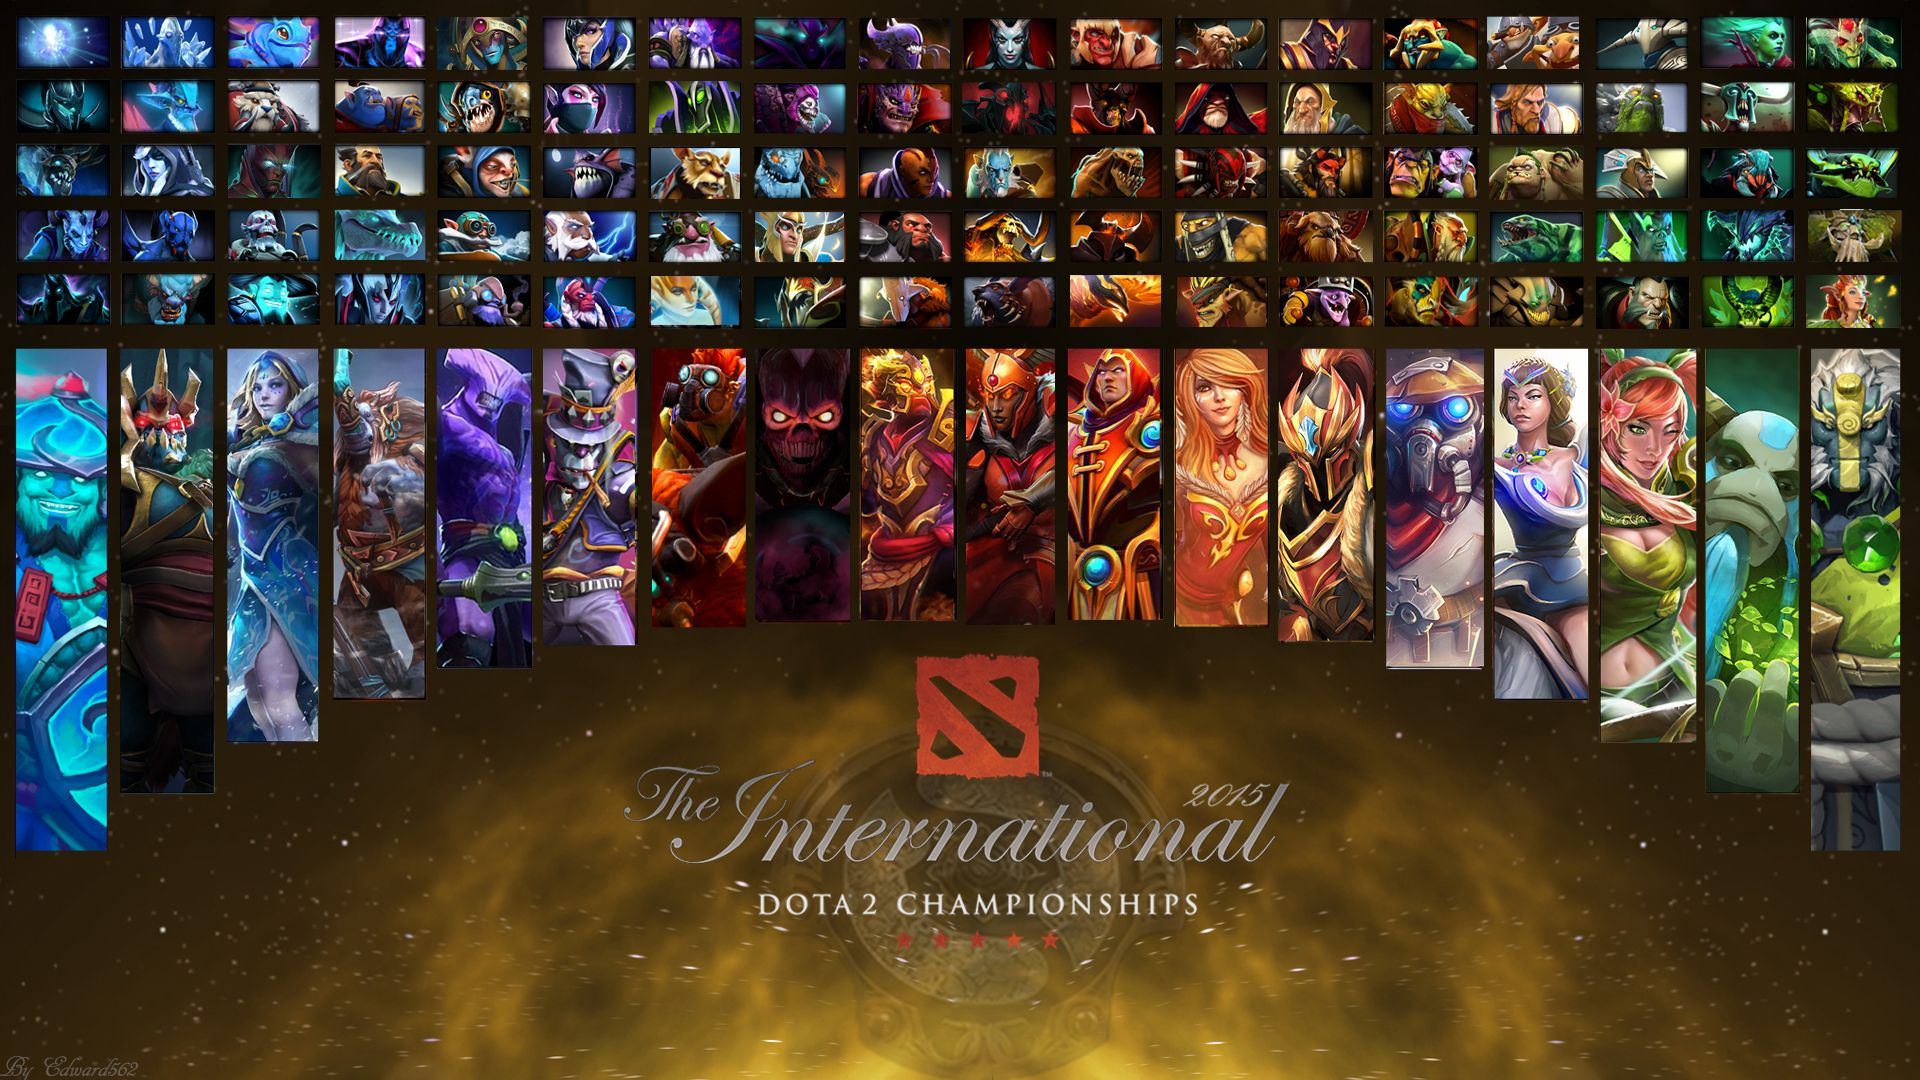 The International 5 All Heroes Wallpaper By Edward5622 Hero Wallpaper Dota 2 Wallpaper Dota 2